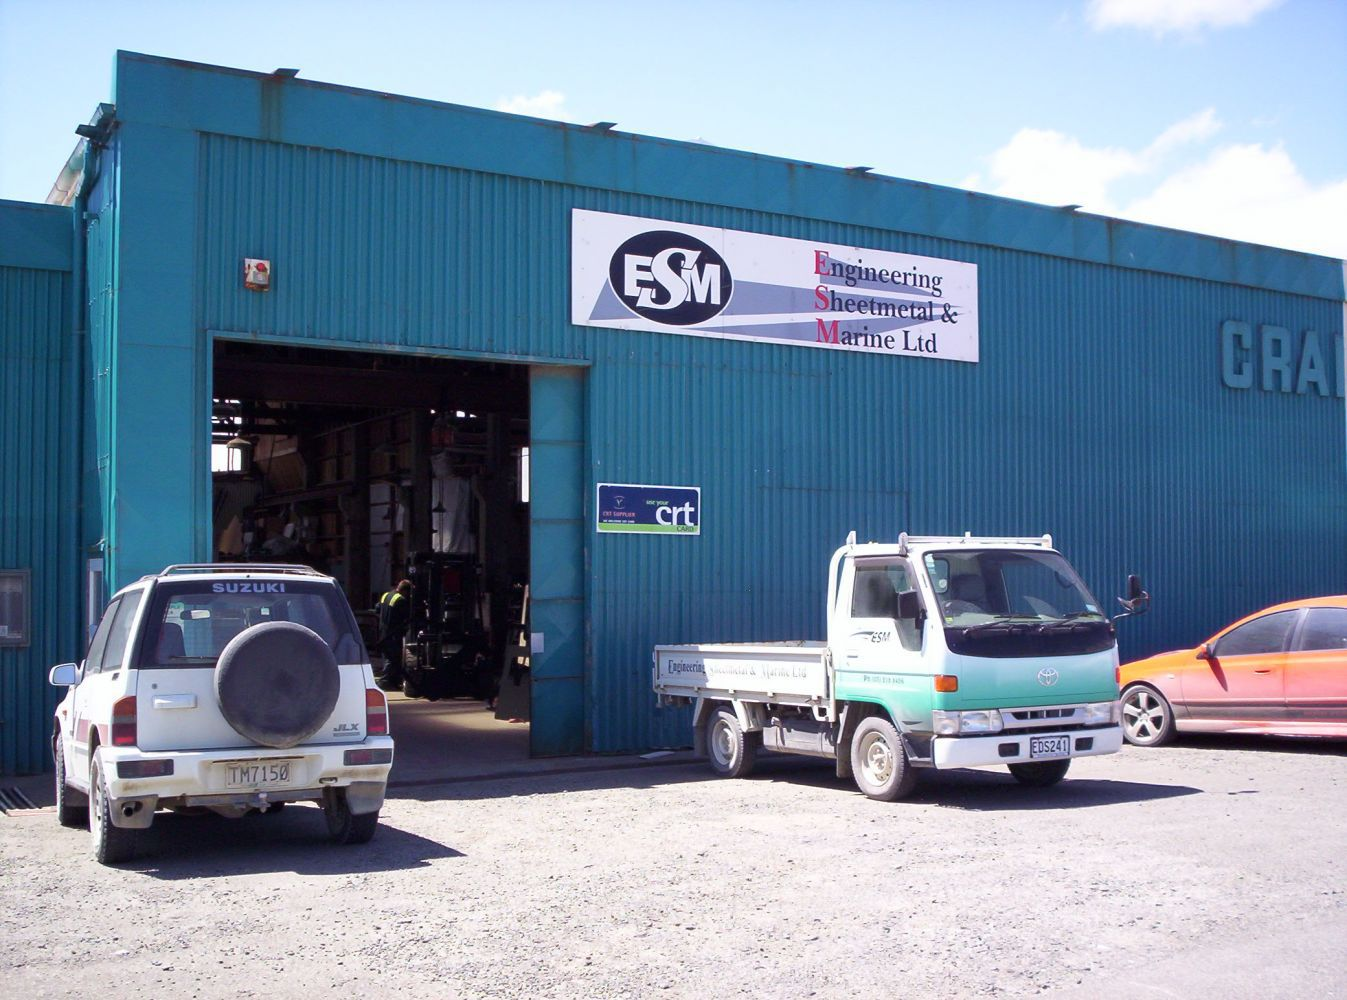 Where sheet metal work is conducted in Invercargill